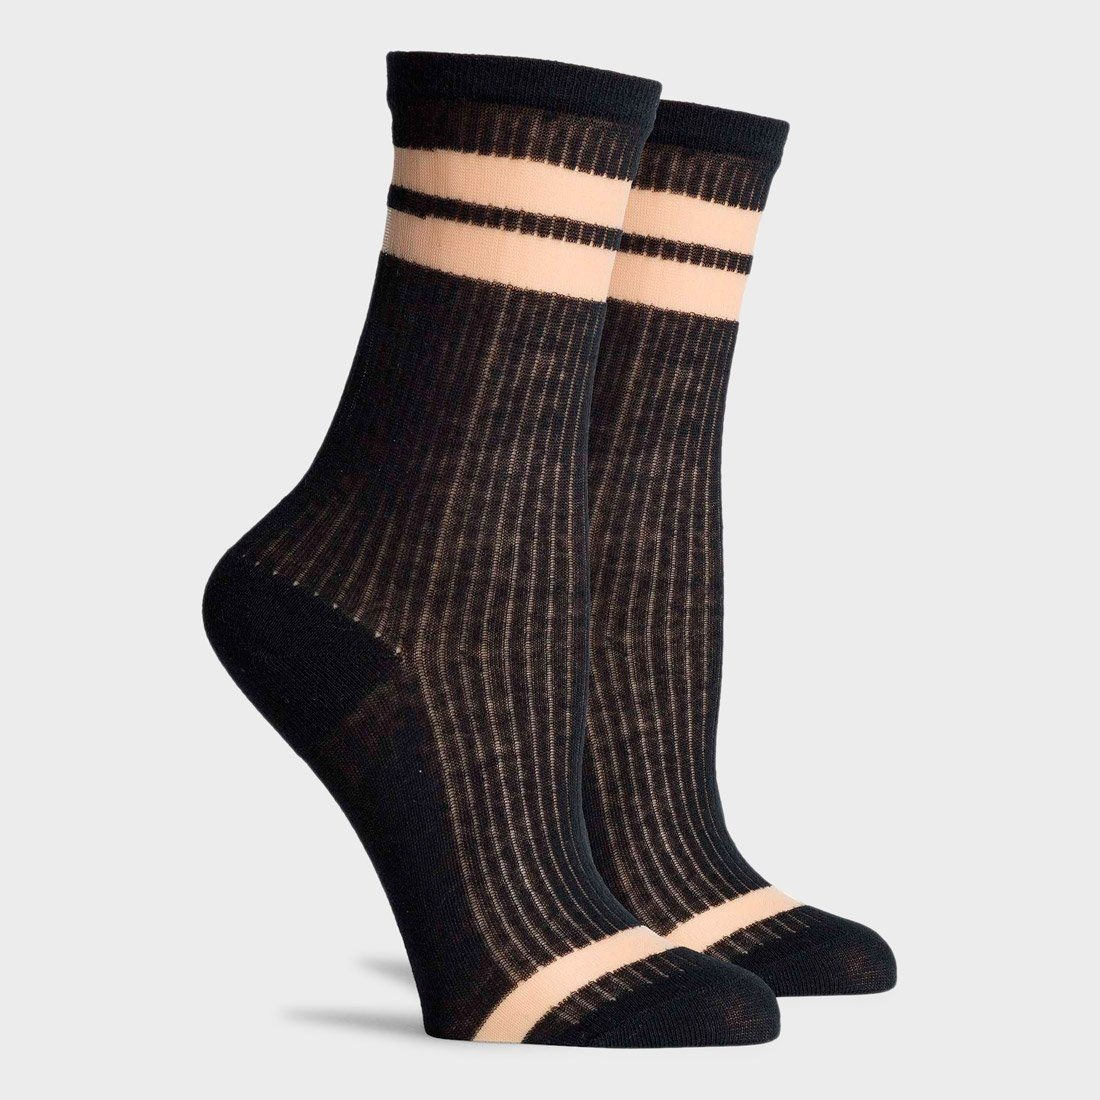 Richer Poorer Women's Cosmic Ankle Socks Black